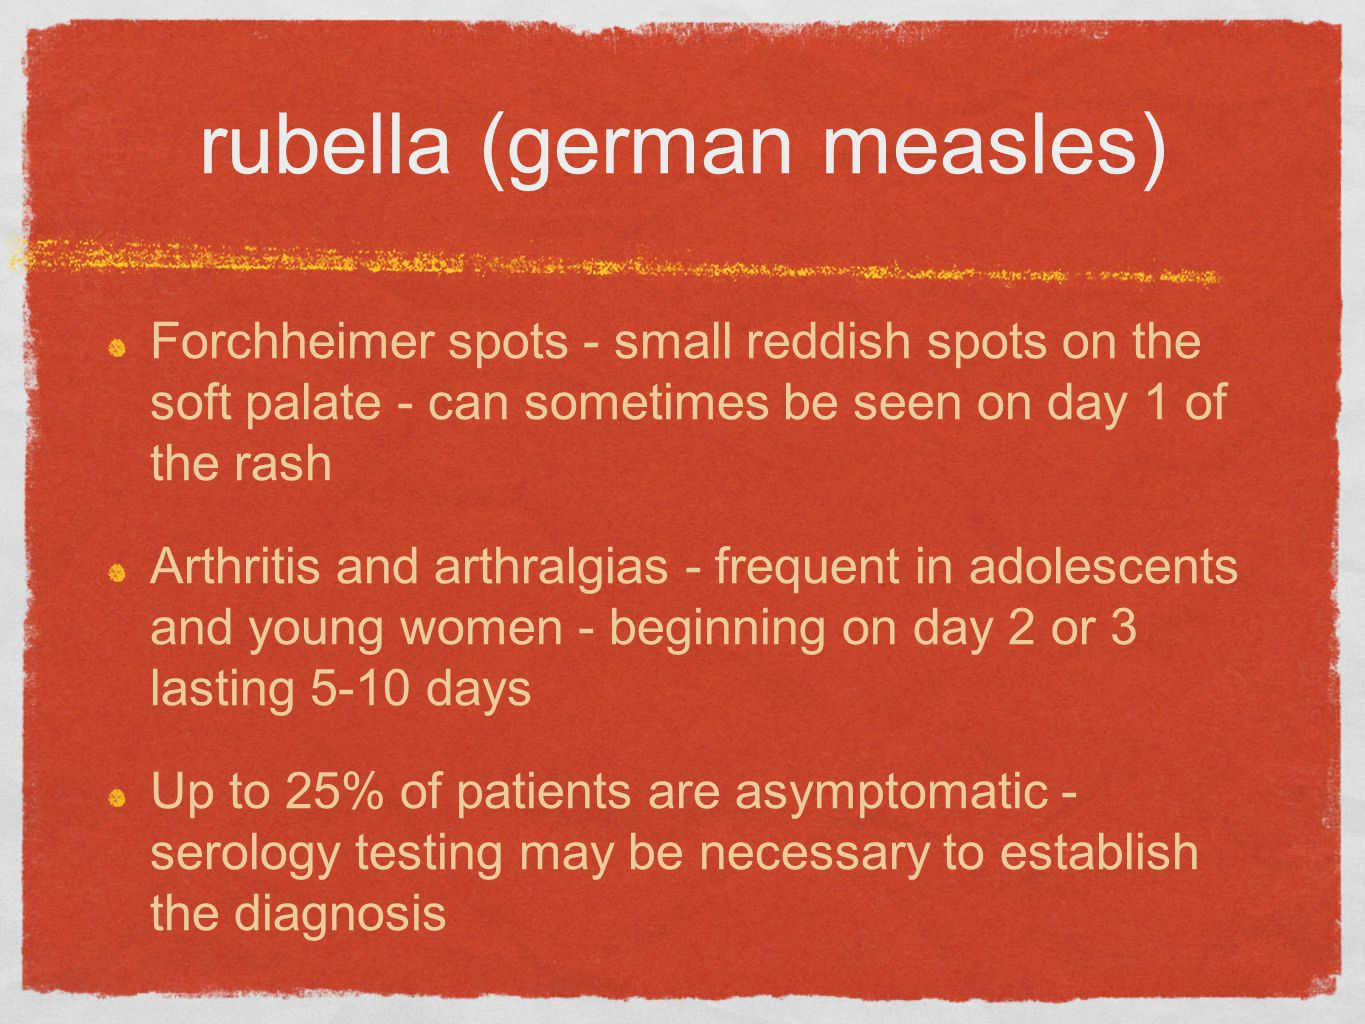 rubella (german measles) Forchheimer spots - small reddish spots on the soft palate - can sometimes be seen on day 1 of the rash Arthritis and arthralgias - frequent in adolescents and young women - beginning on day 2 or 3 lasting 5-10 days Up to 25% of patients are asymptomatic - serology testing may be necessary to establish the diagnosis